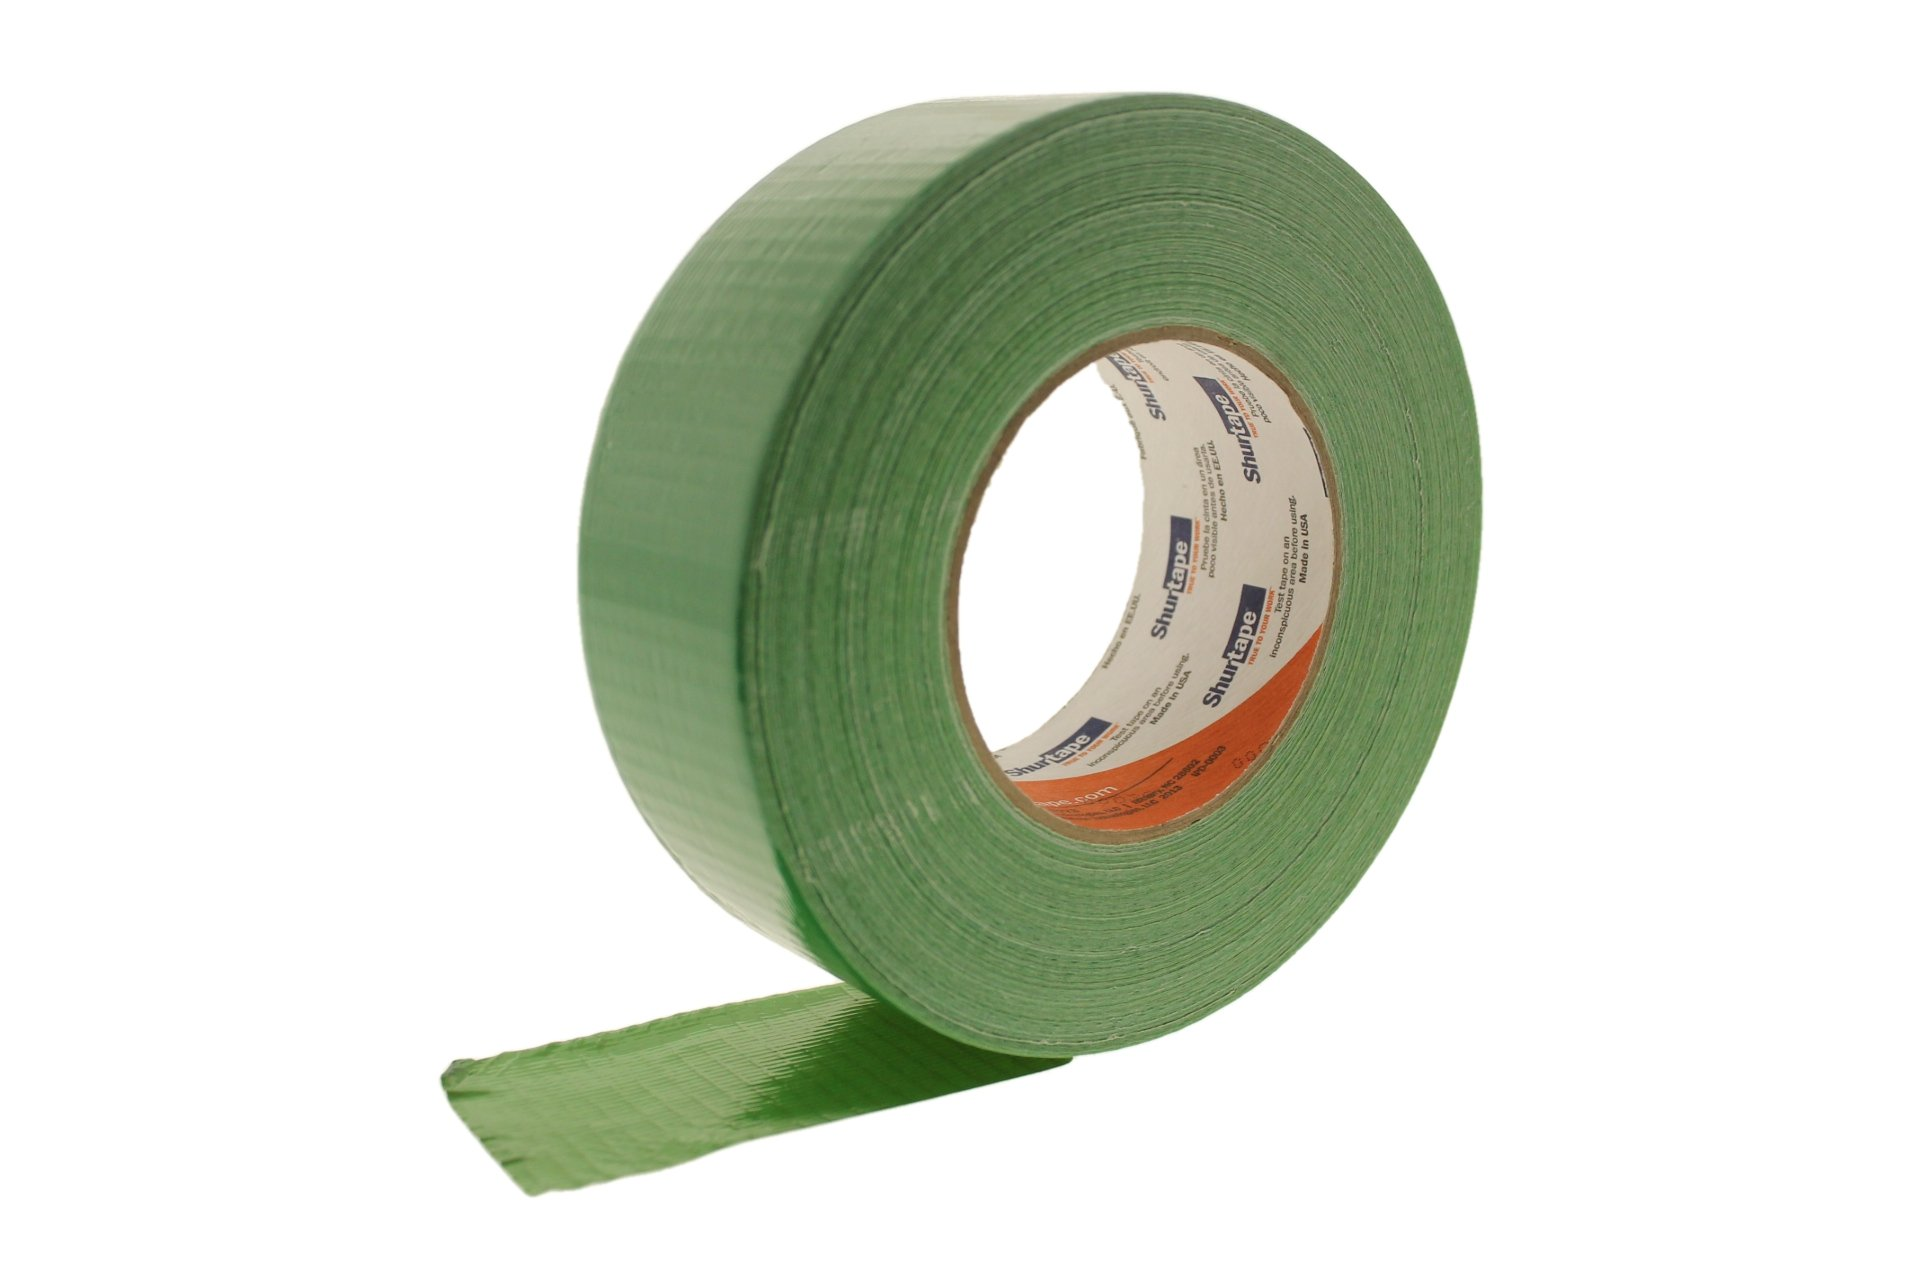 PC-600 Shurtape 2'' Medium Grass Green 9 Mil Cloth Duct Tape Waterproof Hand Tearable UV Resistant High Visibility Industrial Grade Heavy Duty Pro Colored Duct Tape Colors USA Made 60yd